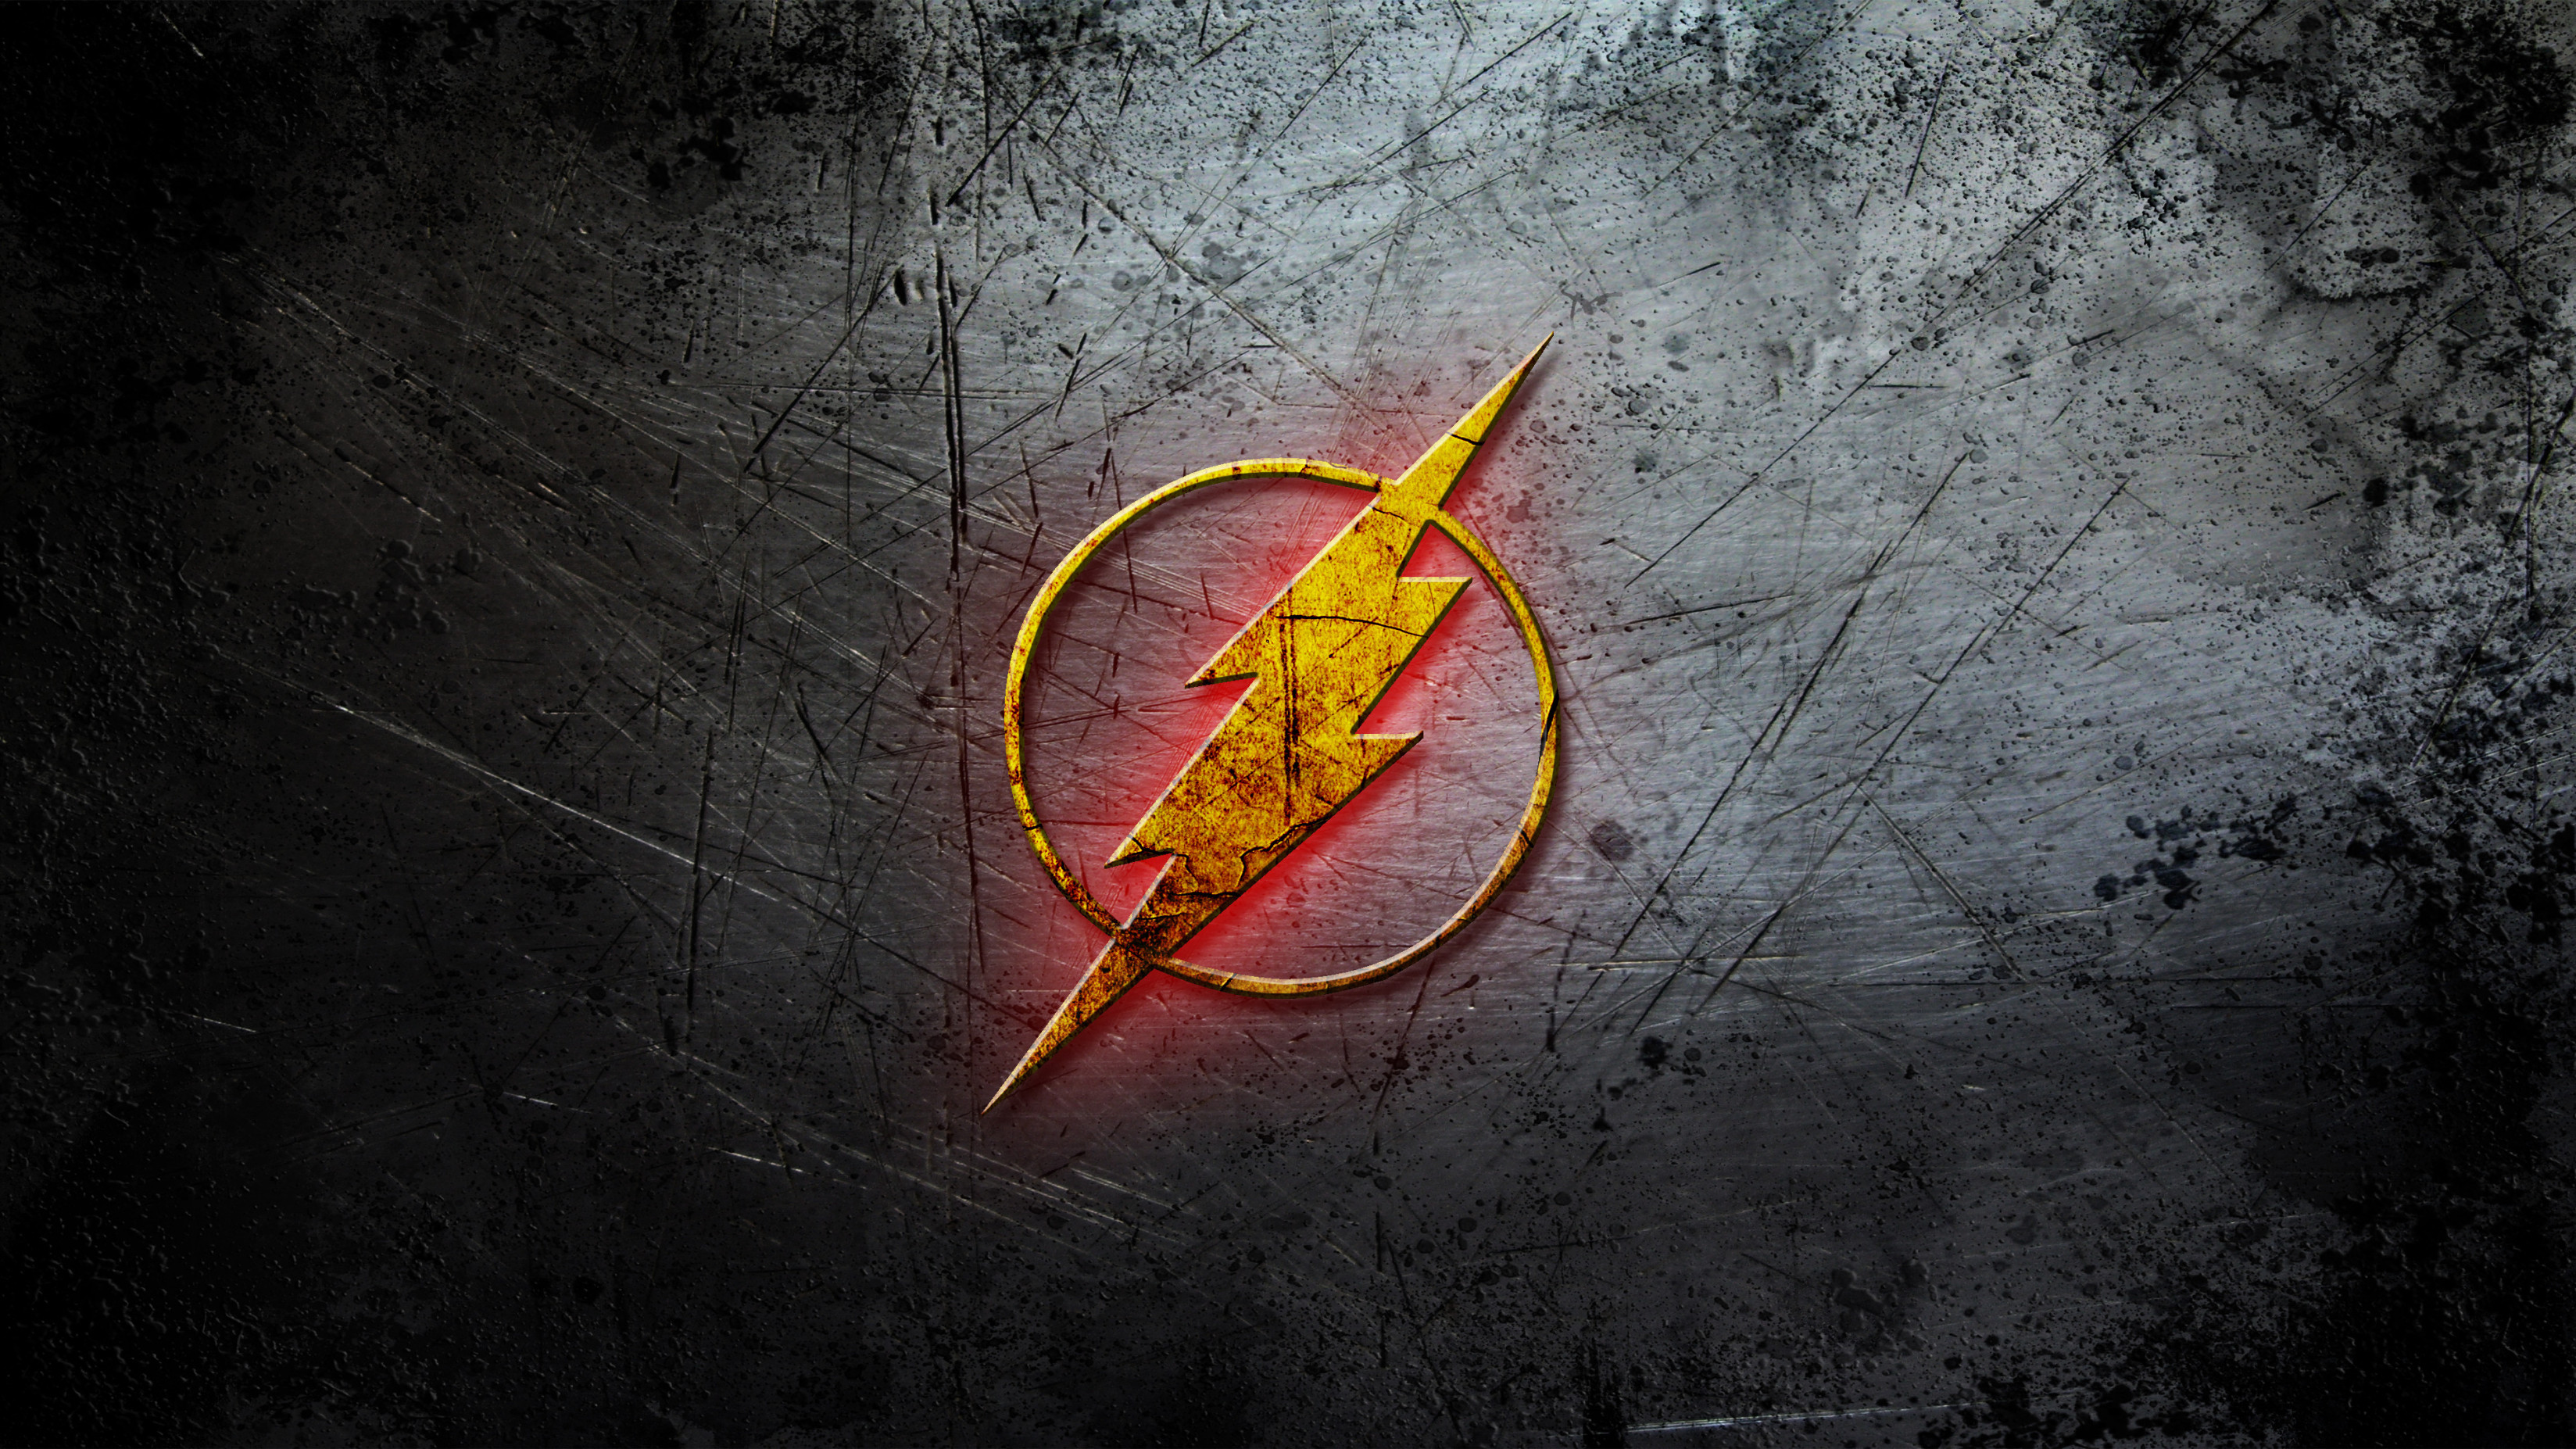 Fondos En Hd Para Pc: The Flash Wallpapers, Flash Fondos De Pantalla Hd